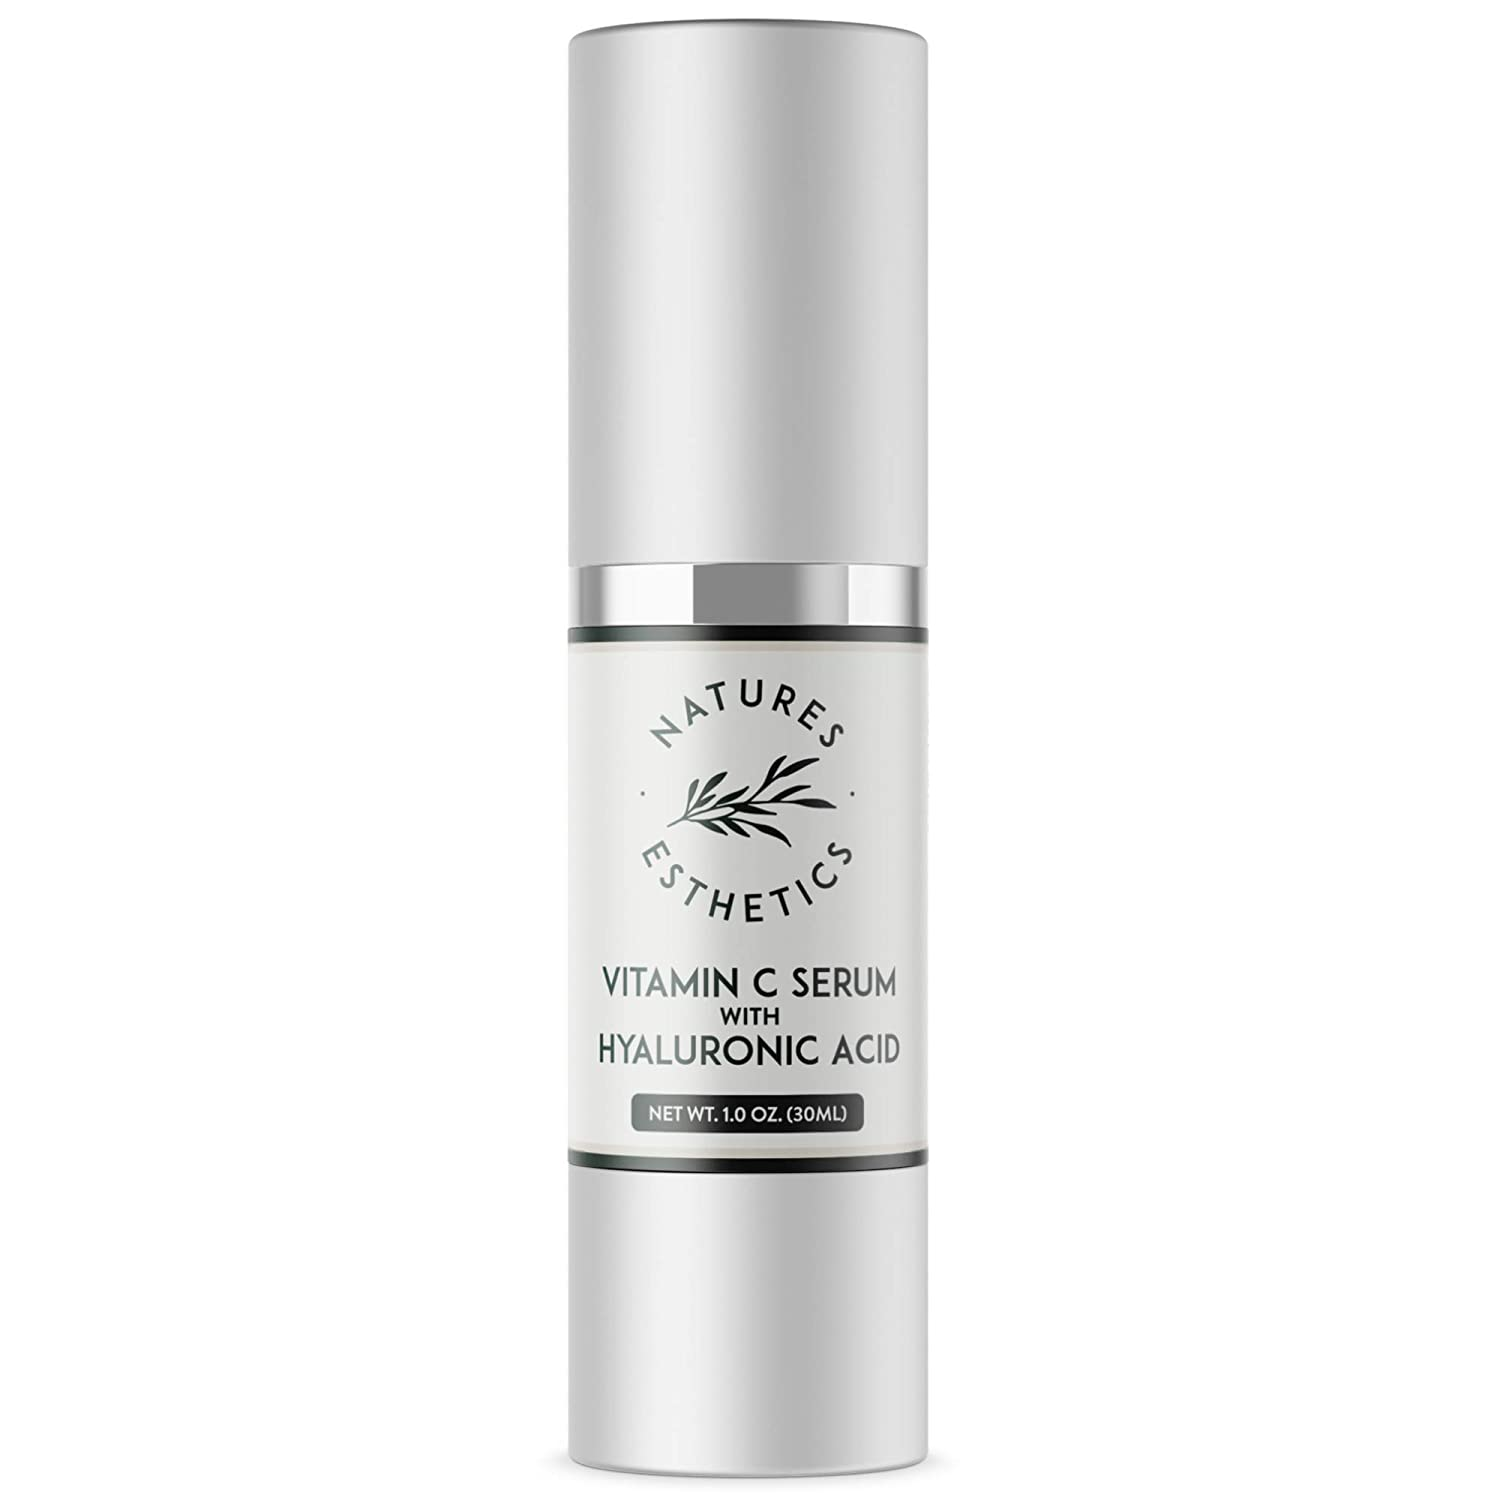 Natures Esthetics Vitamin C Serum with Hyaluronic Acid for Face - Anti-Aging, Pore Minimizer, Acne Treatment, Skin Brightening and Tightening. Packaging Prevents Oxidation. Air-Tight 1 fl.oz